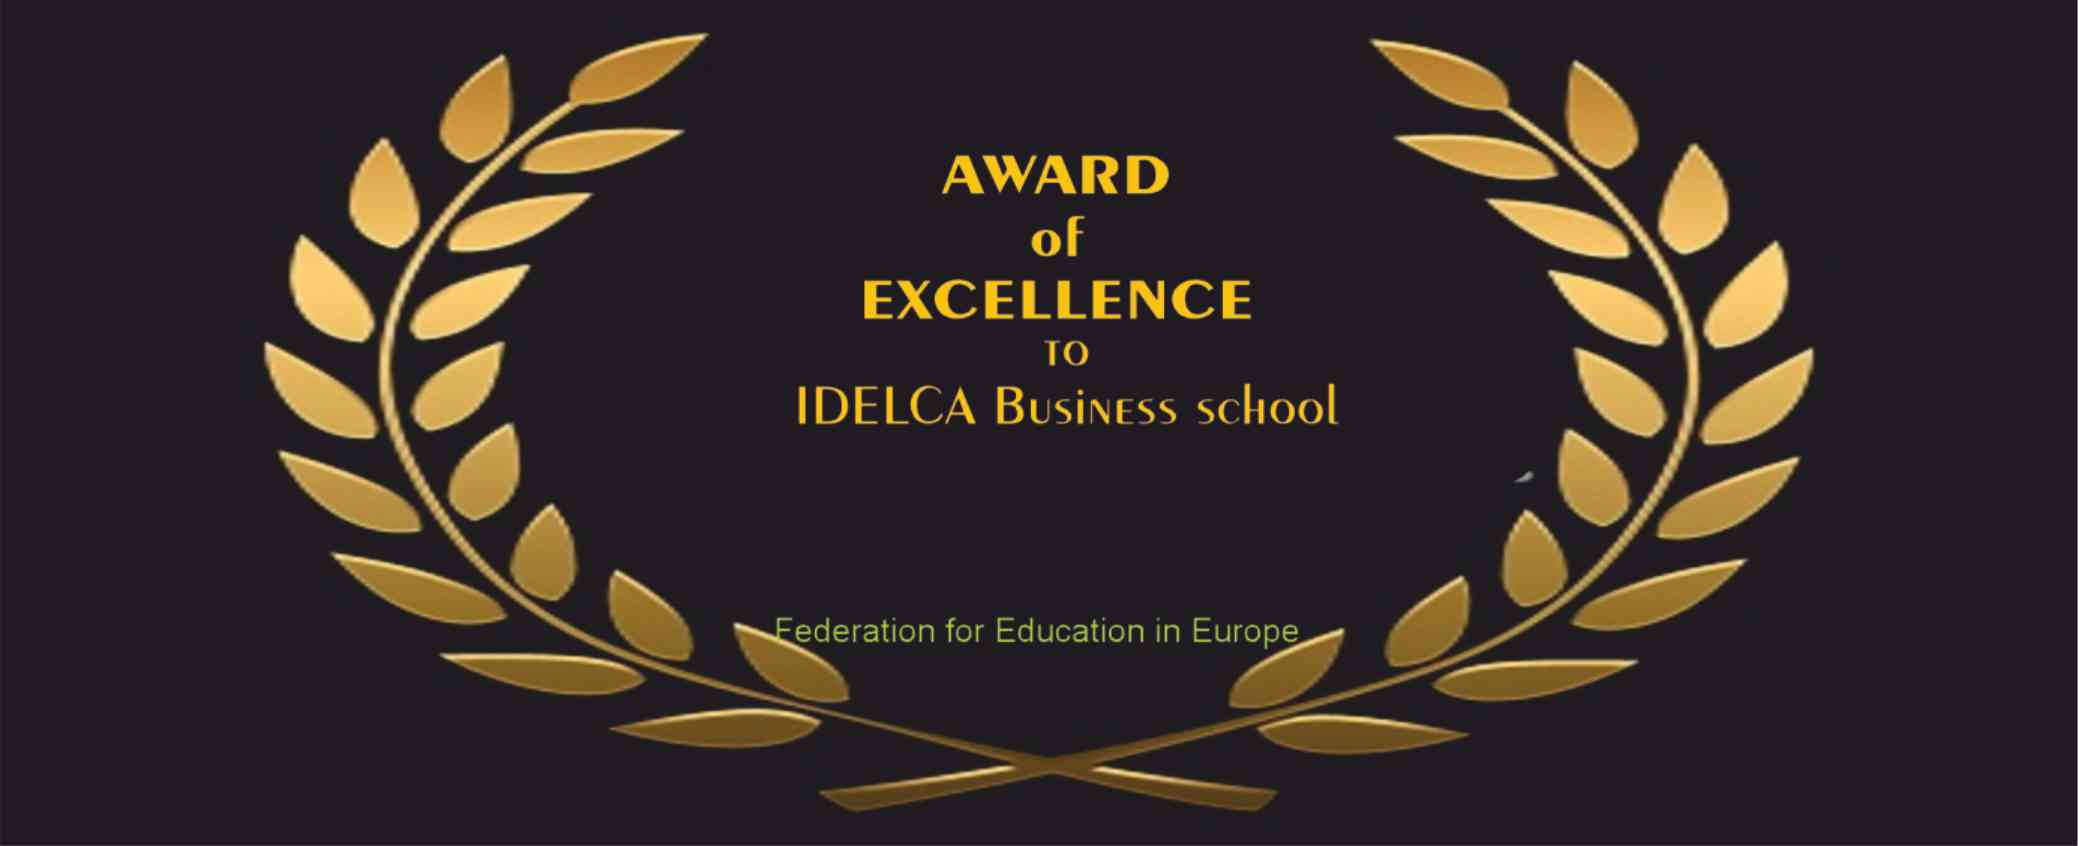 award ecole commerce montpellier